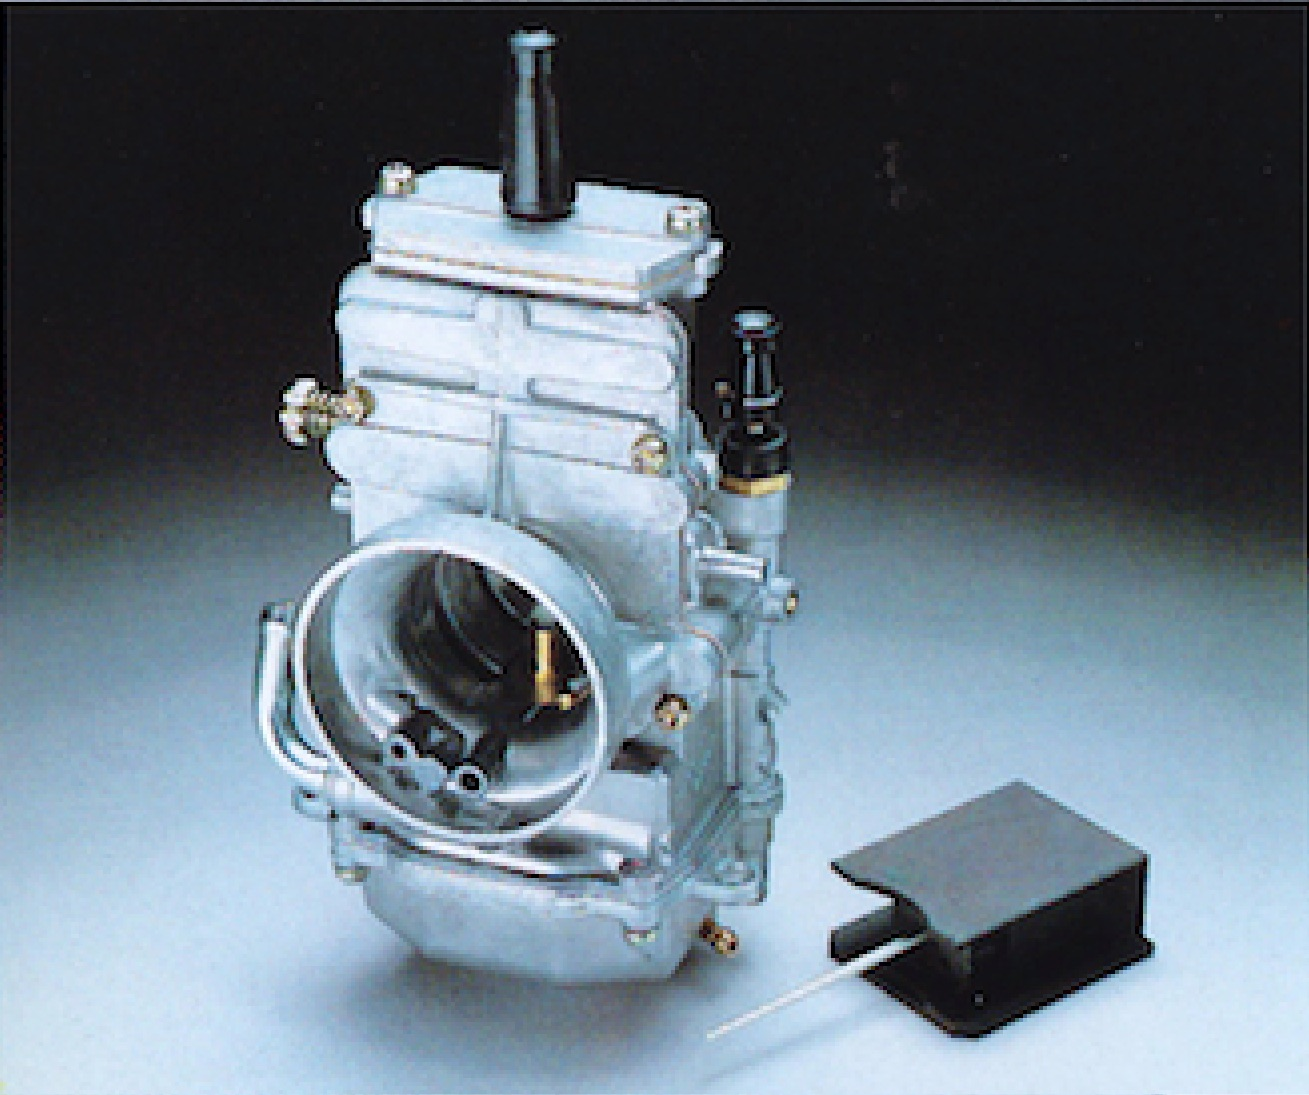 The RM's 34mm flat-slide Mikuni carburetor looked cool, but did very little  to aid the Suzuki's meager output.